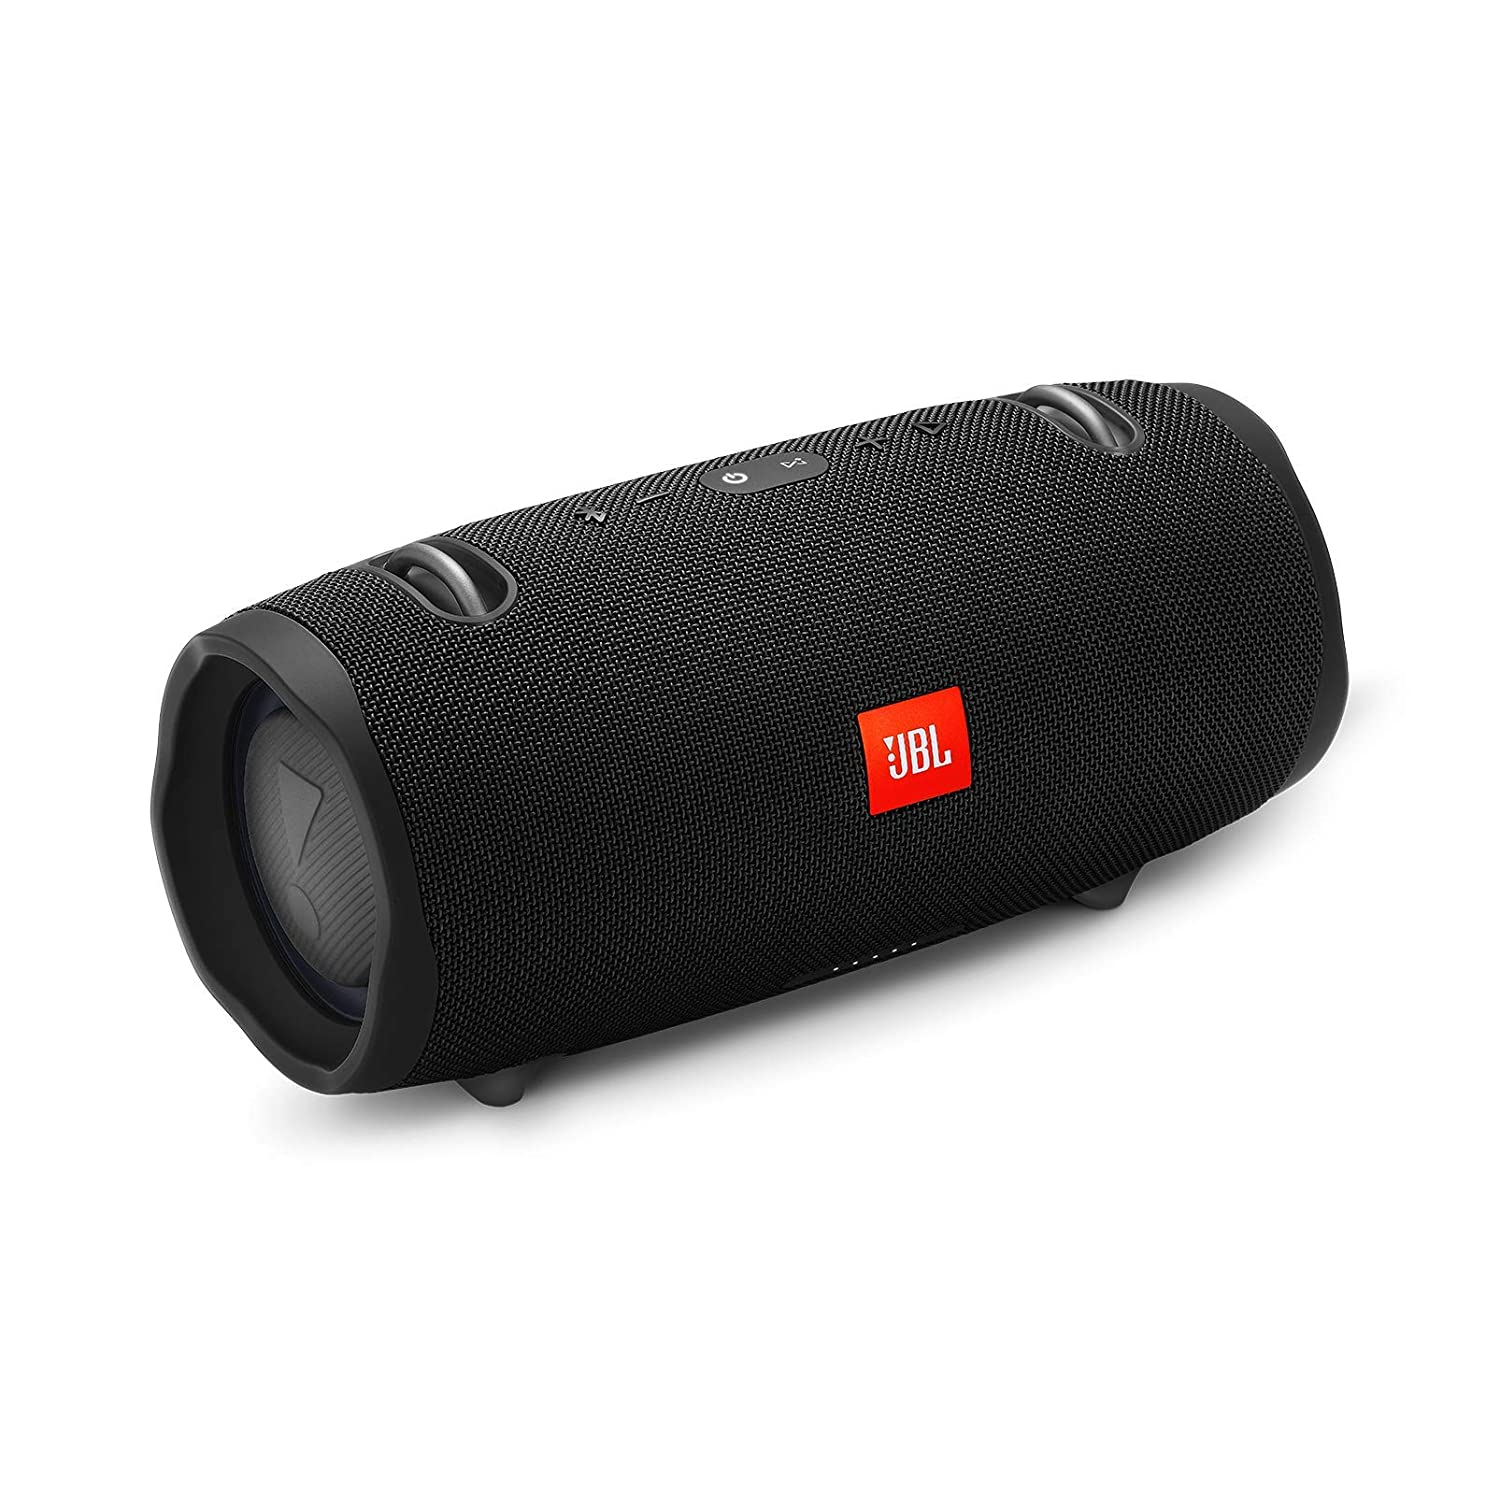 JBL Lifestyle Xtreme 2 Portable Bluetooth Speaker - Black